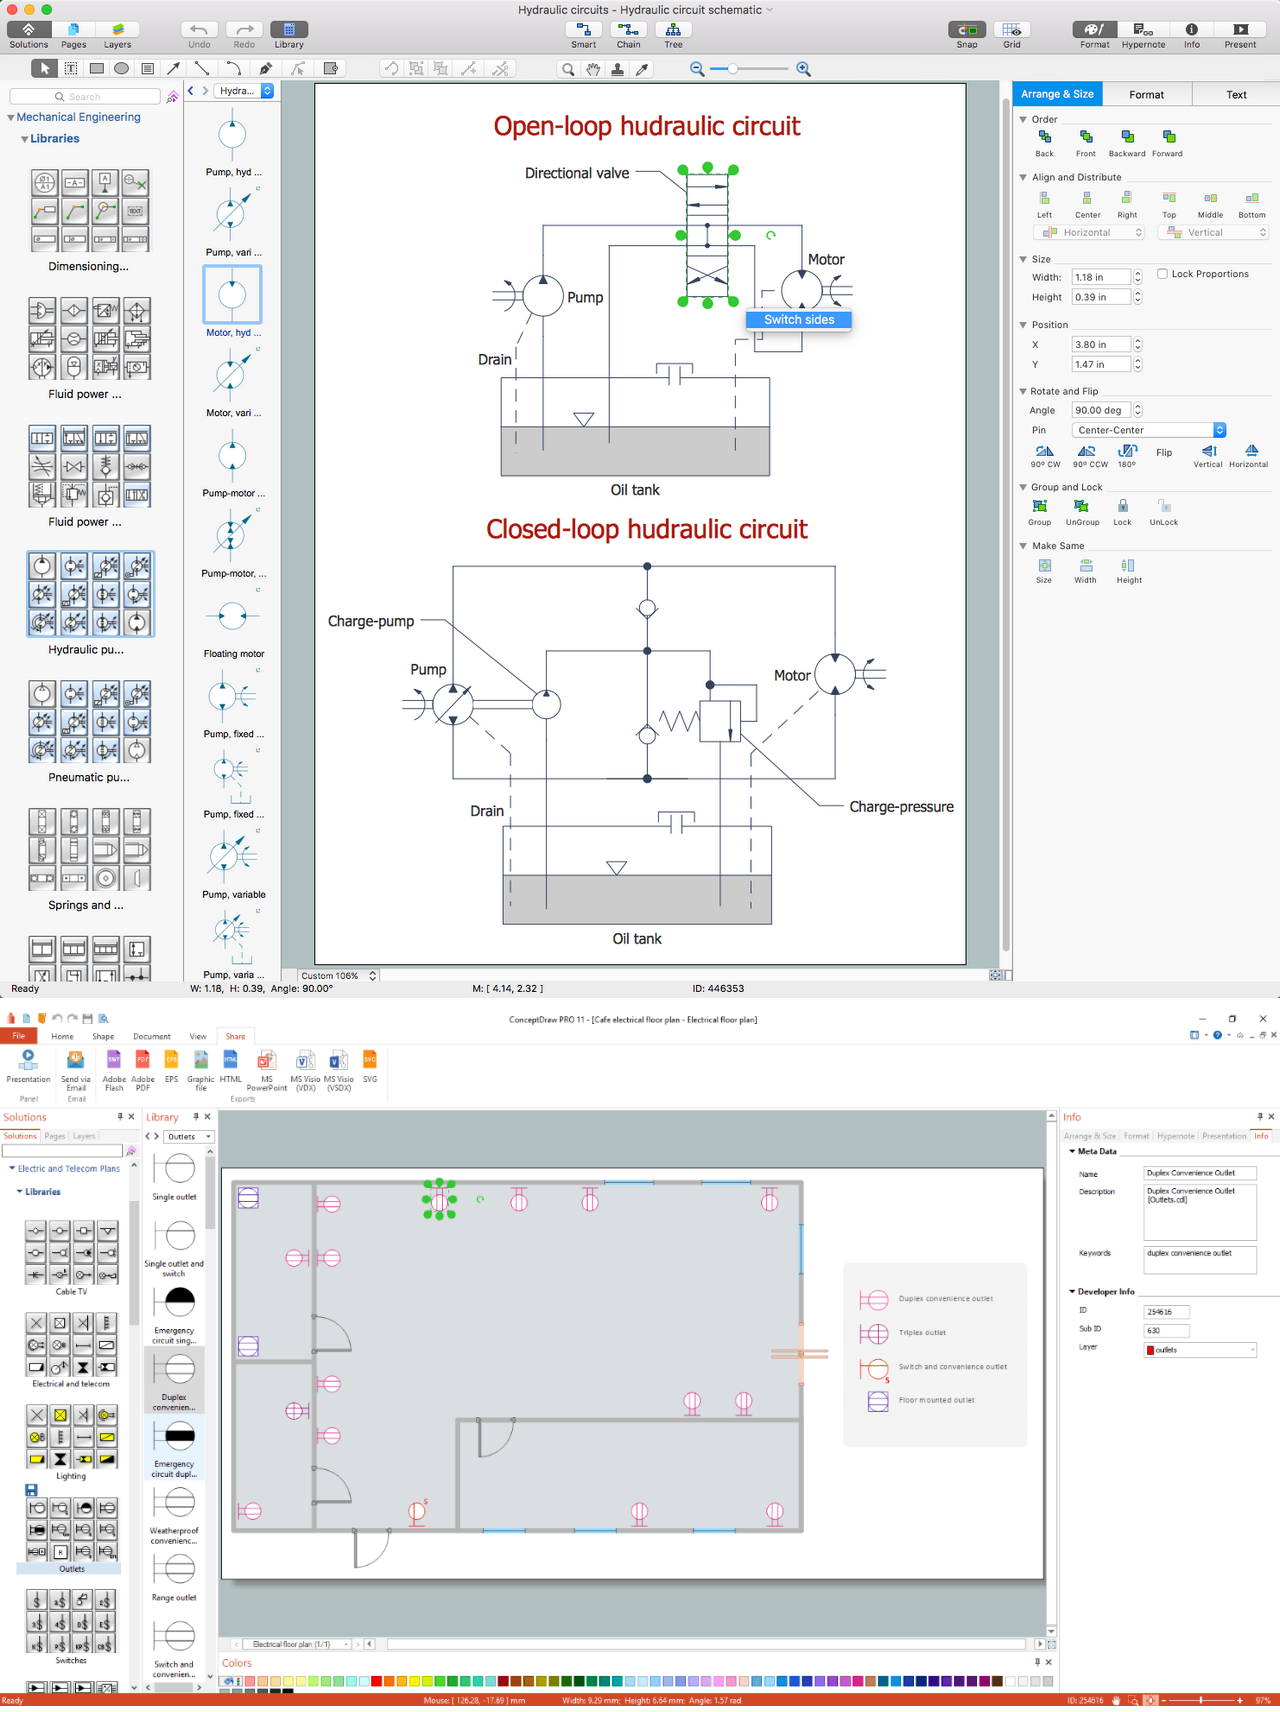 Free Schematics Cad - Auto Electrical Wiring Diagram • on free venn diagram, free design, logic synthesis, free electronics, free schedule, free assembly, free sectional, free logic, free pictogram, free cad, free drawing, electronic design automation, digital electronics, schematic editor,